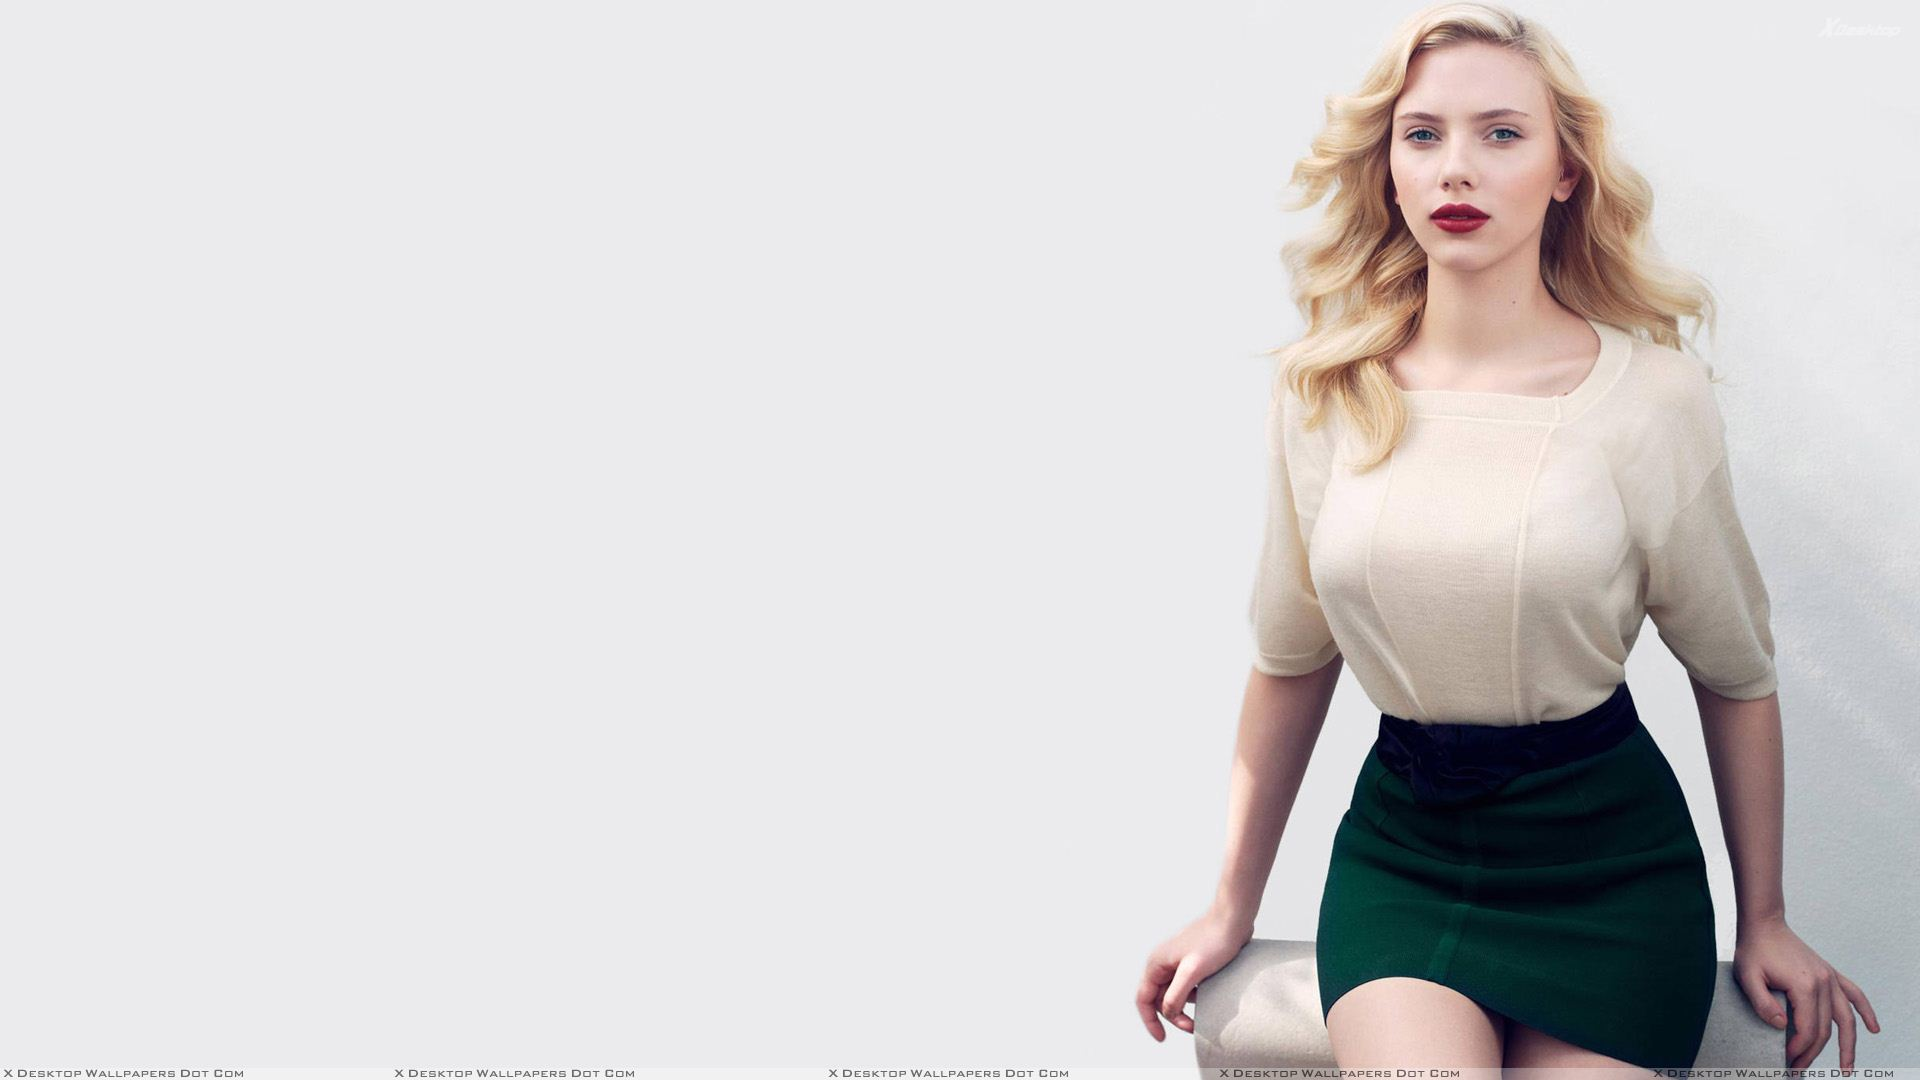 Scarlett Johansson HD wallpaper for download